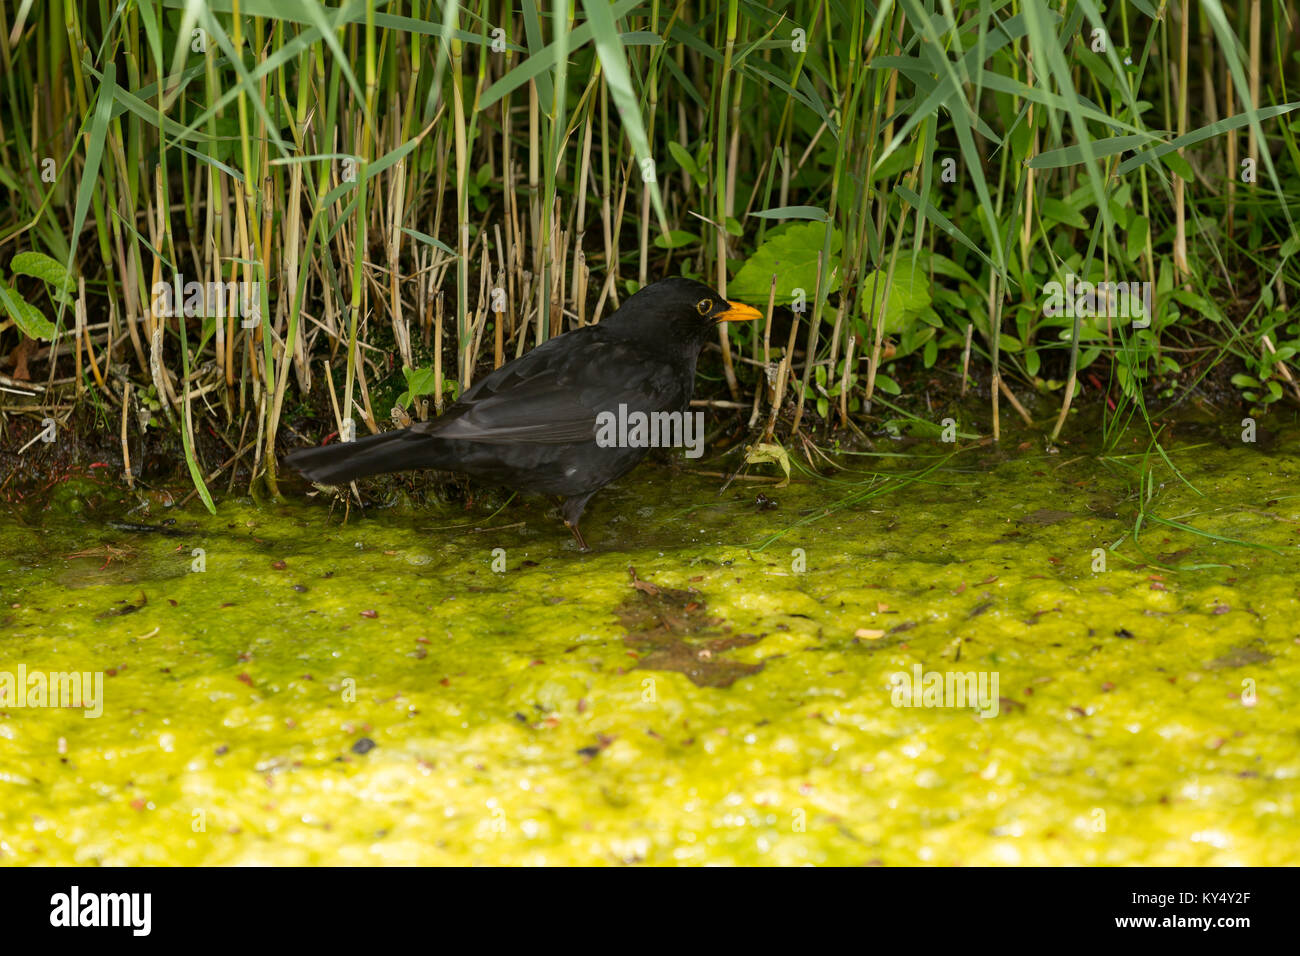 Common blackbird looking foraging in a swamp - Stock Image